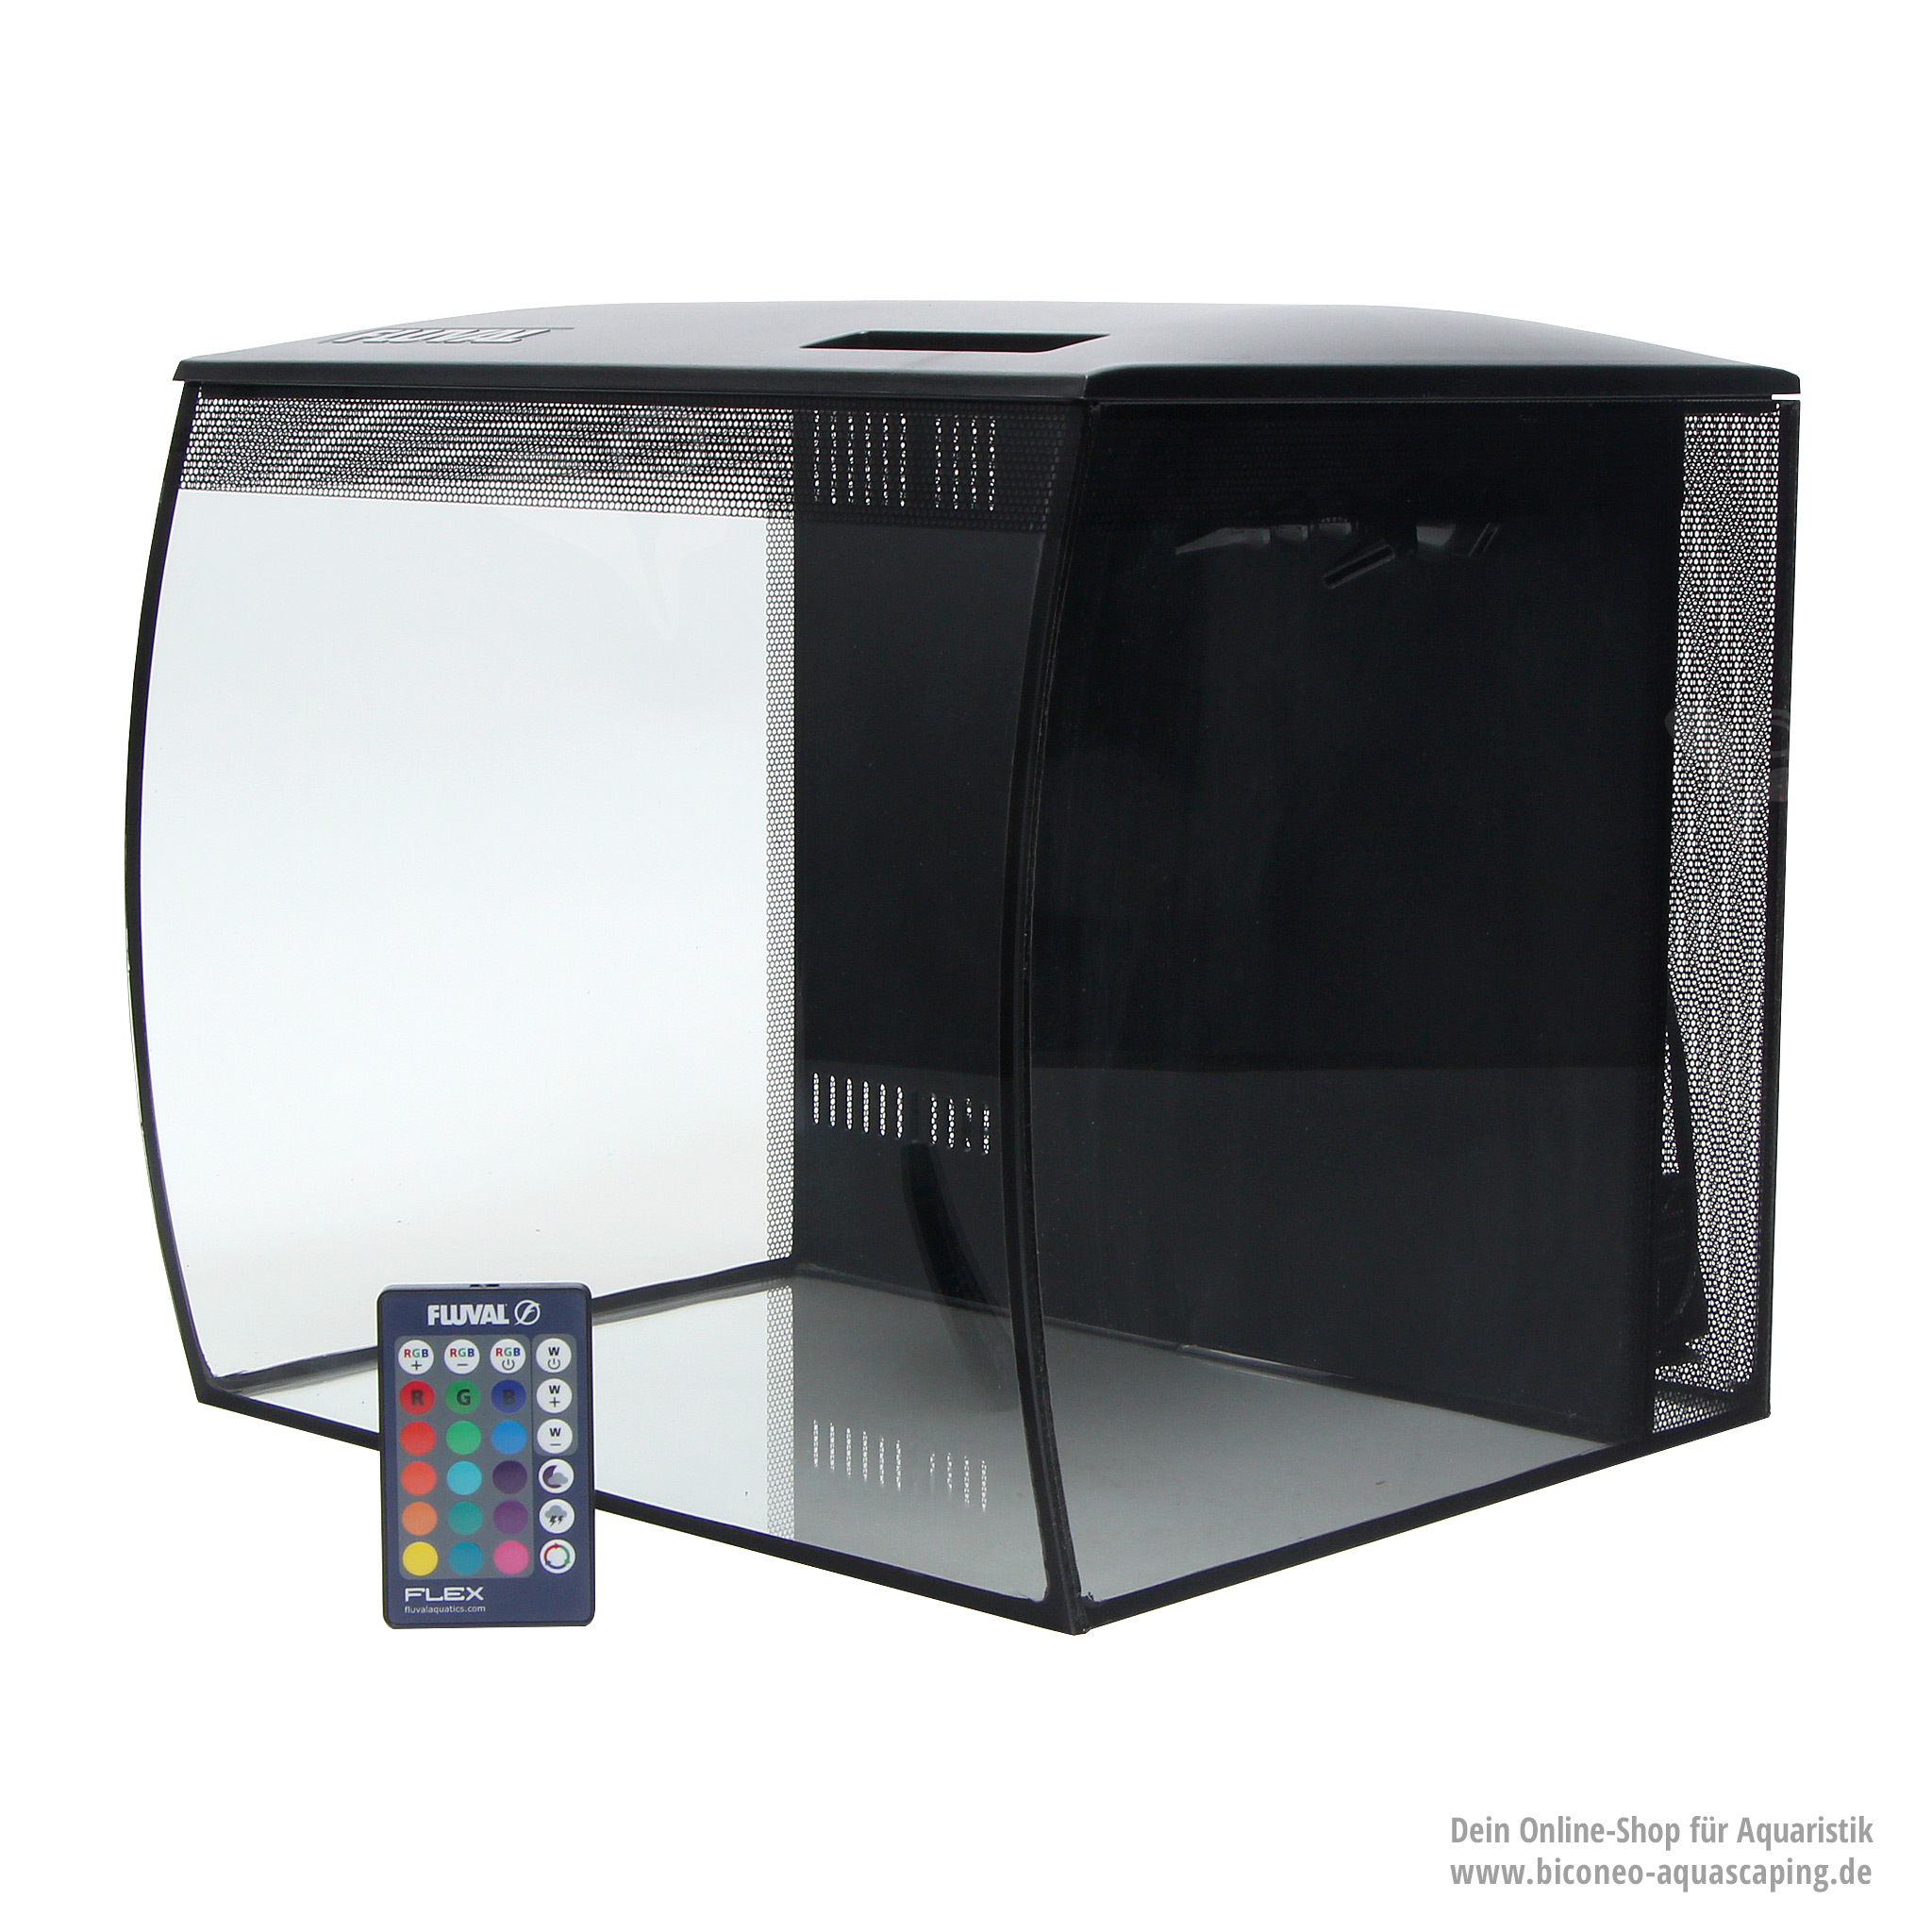 fluval flex aquarienset 34l. Black Bedroom Furniture Sets. Home Design Ideas